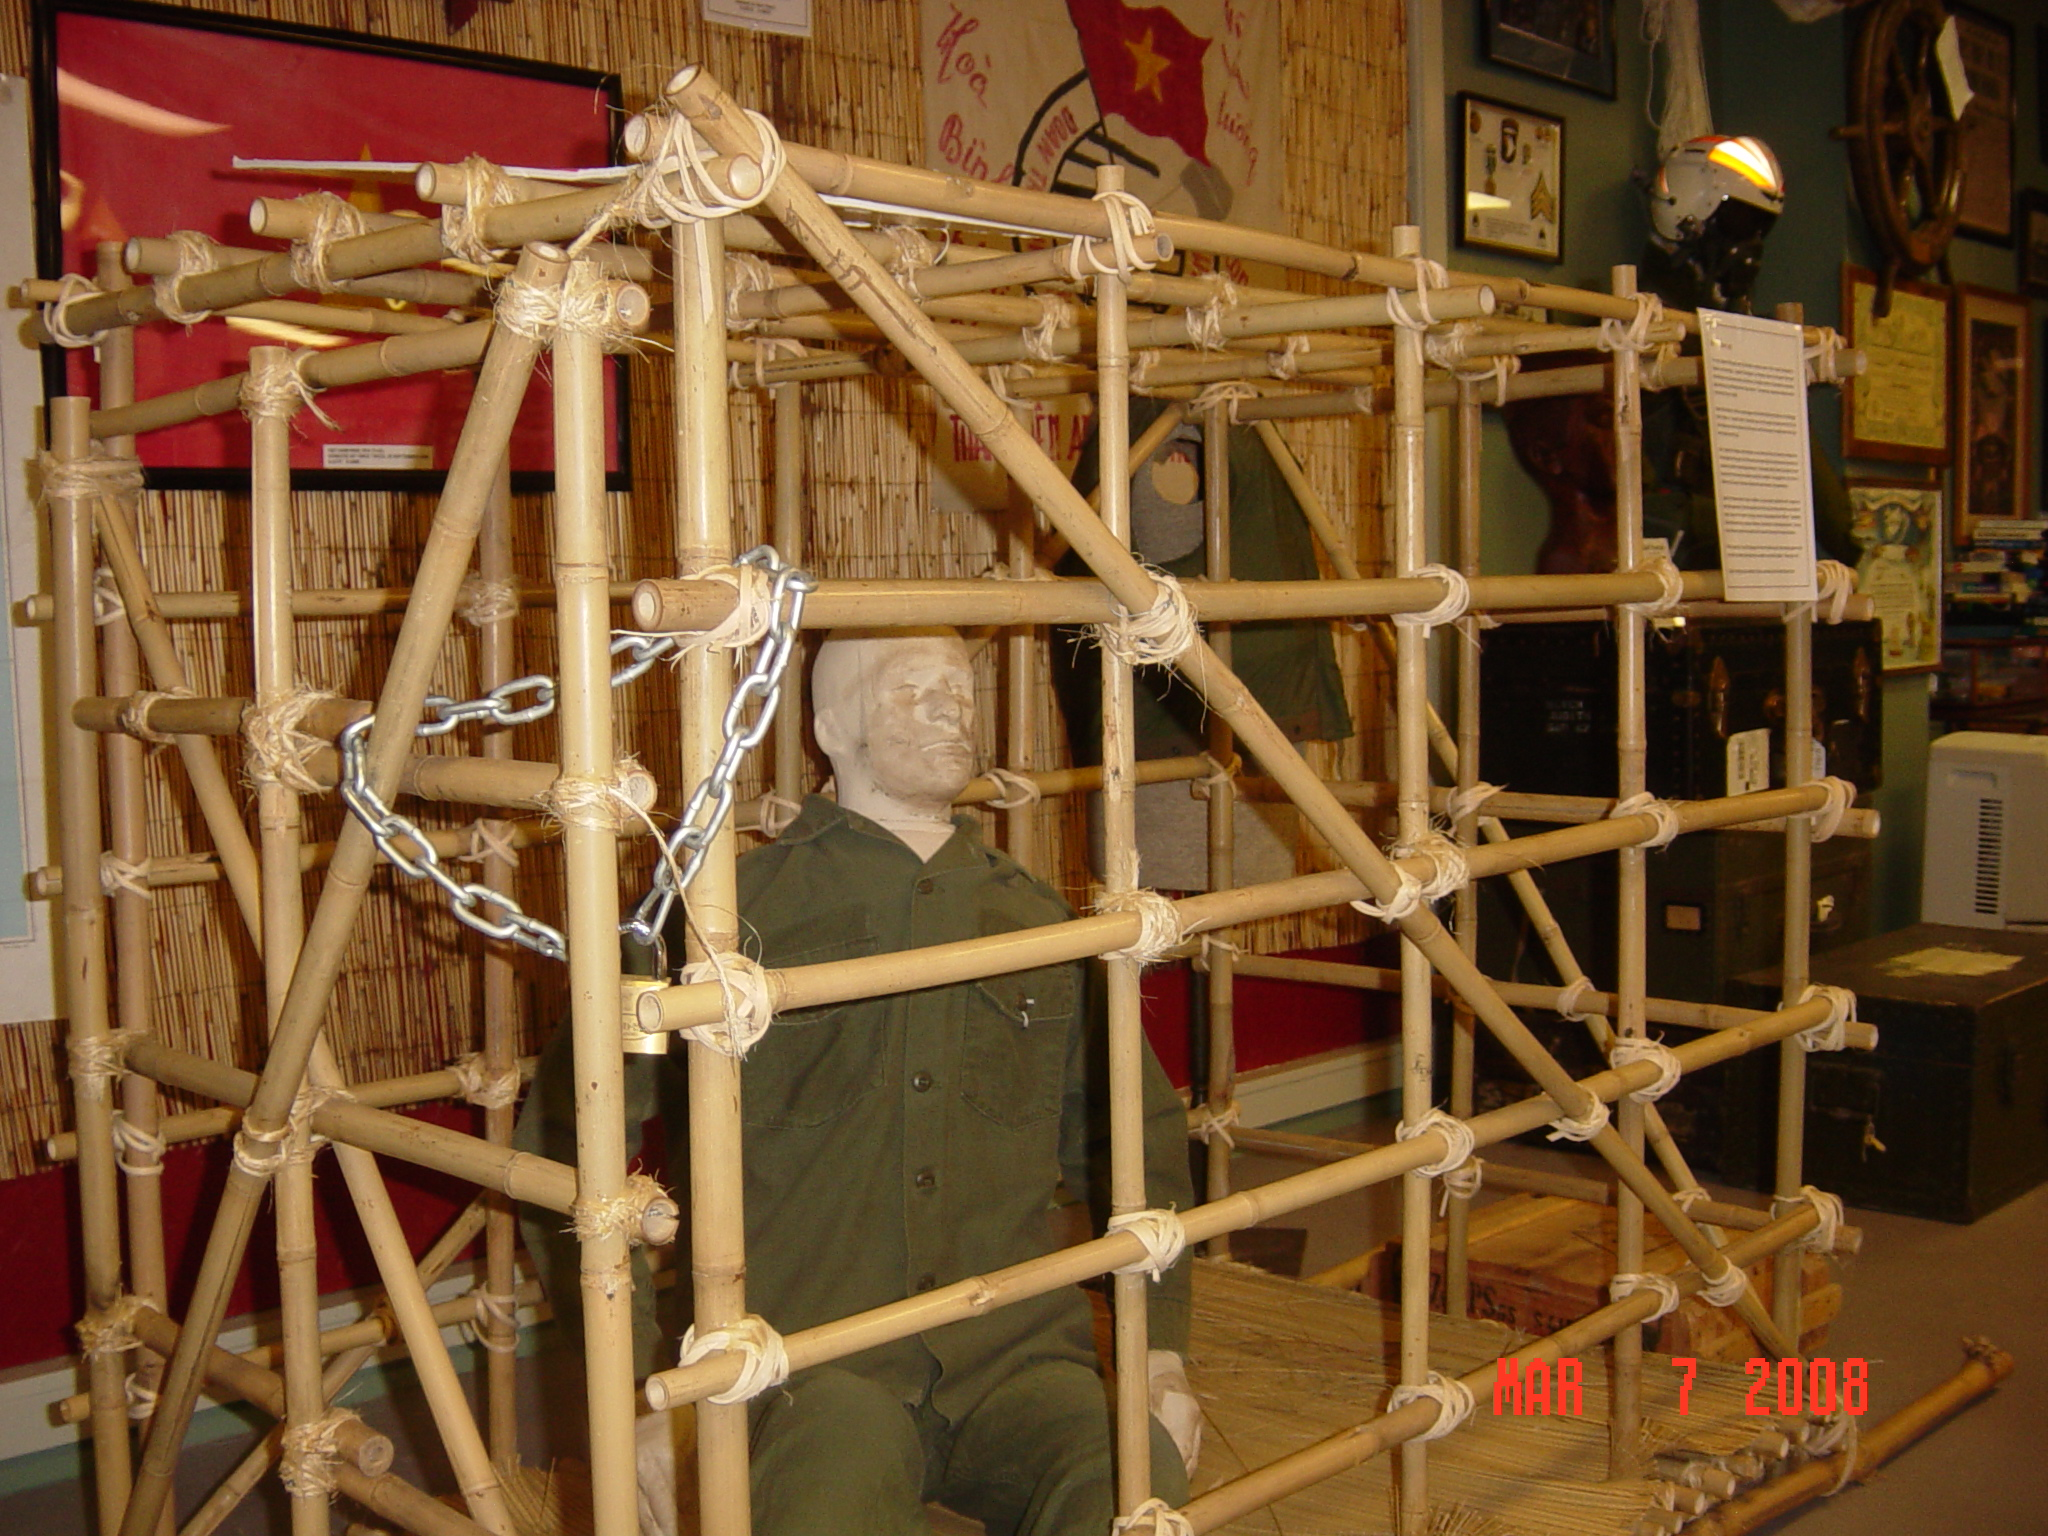 Photos from military heritage and aviation museum in punta gorda florida - Tiger in cage images ...